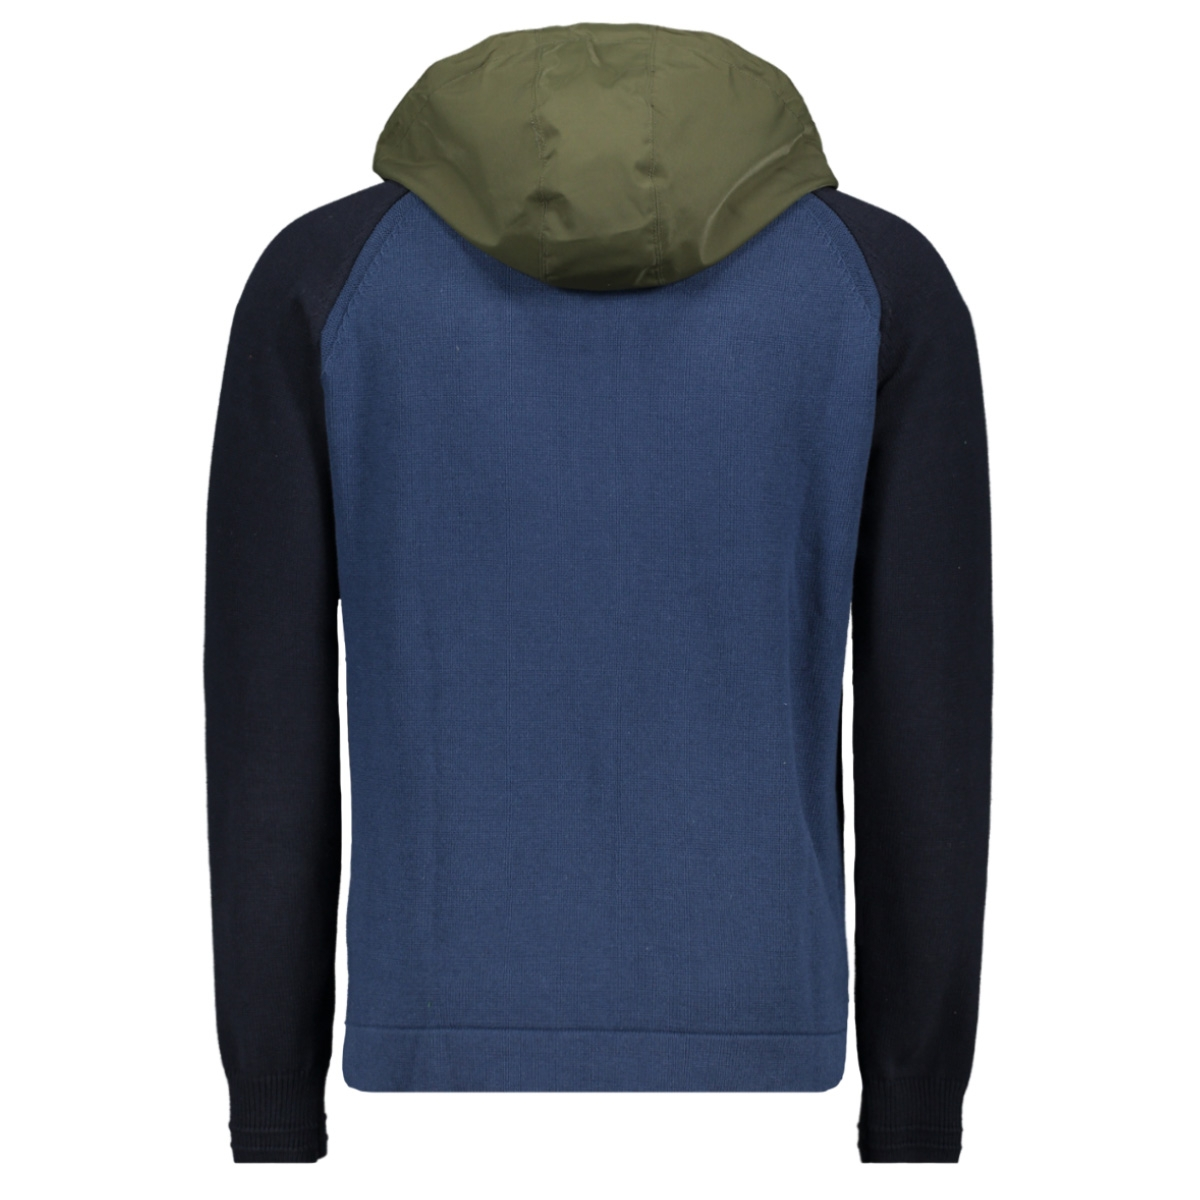 hooded colorblock pullover pkw195309 pme legend trui 5126